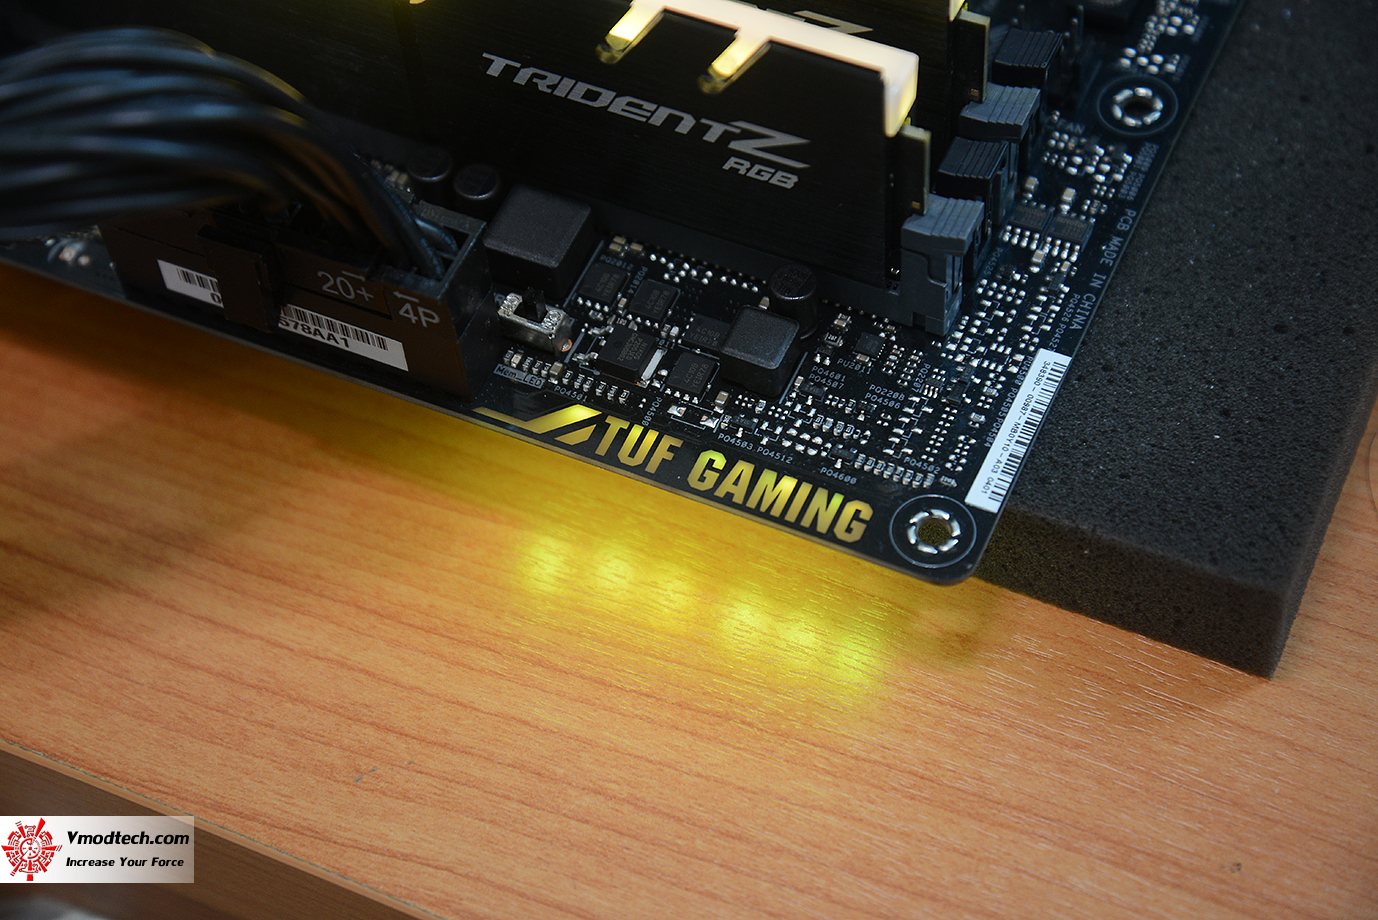 dsc 3298 ASUS TUF Z390M PRO GAMING REVIEW